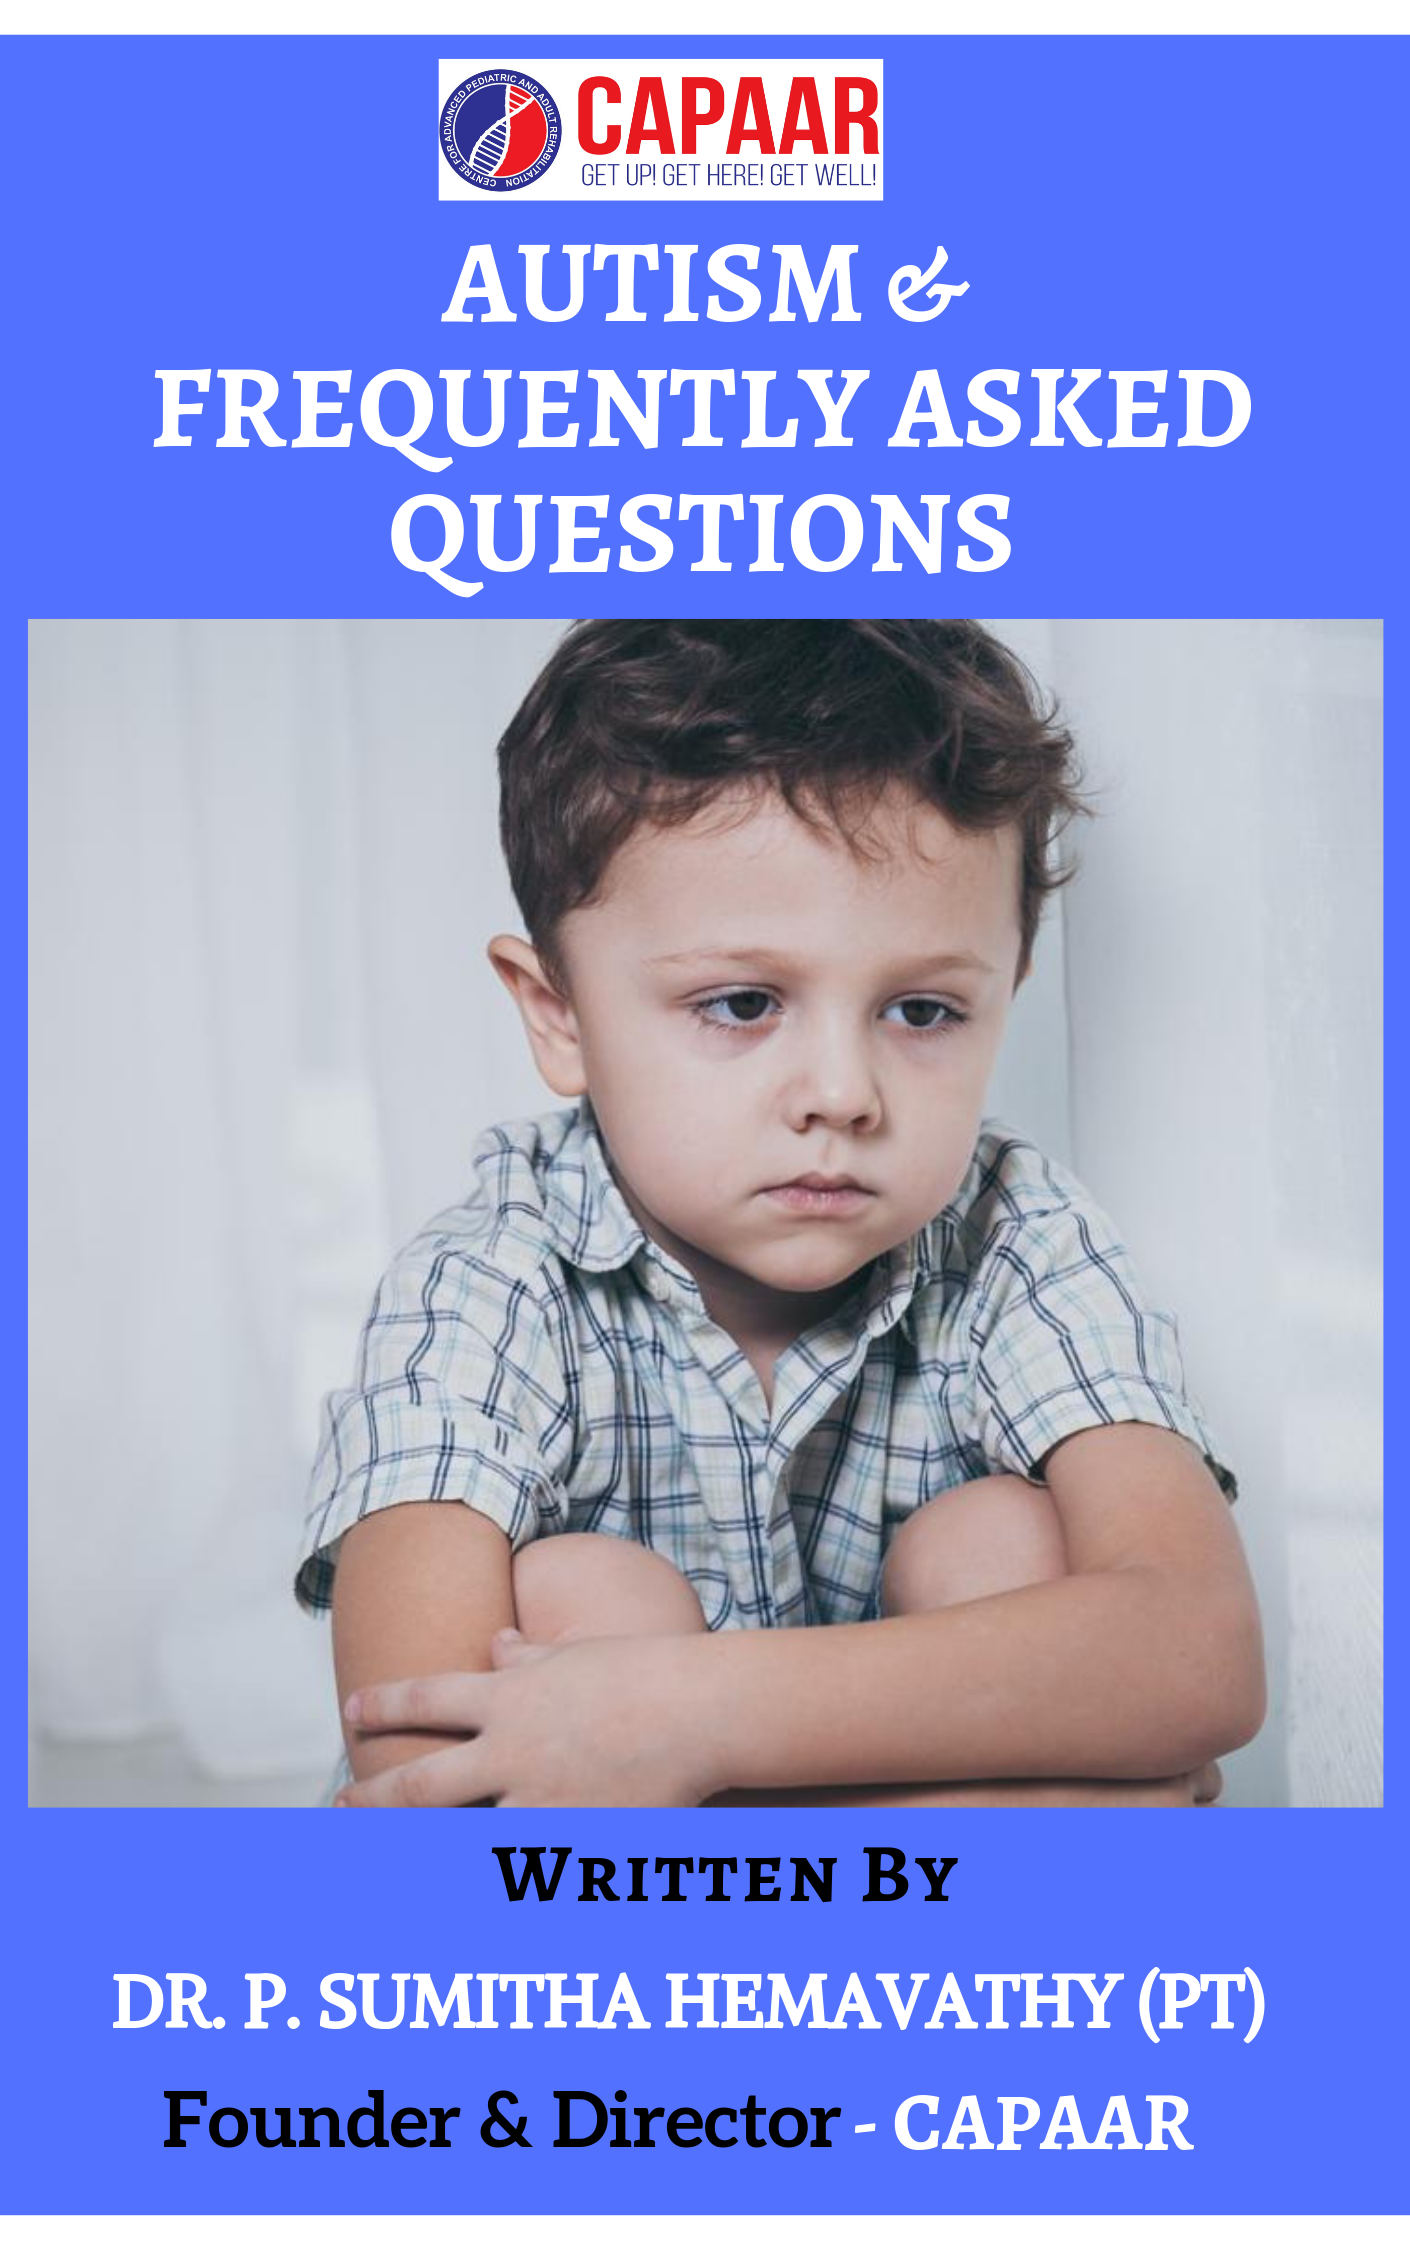 Autism & Frequently Asked Questions